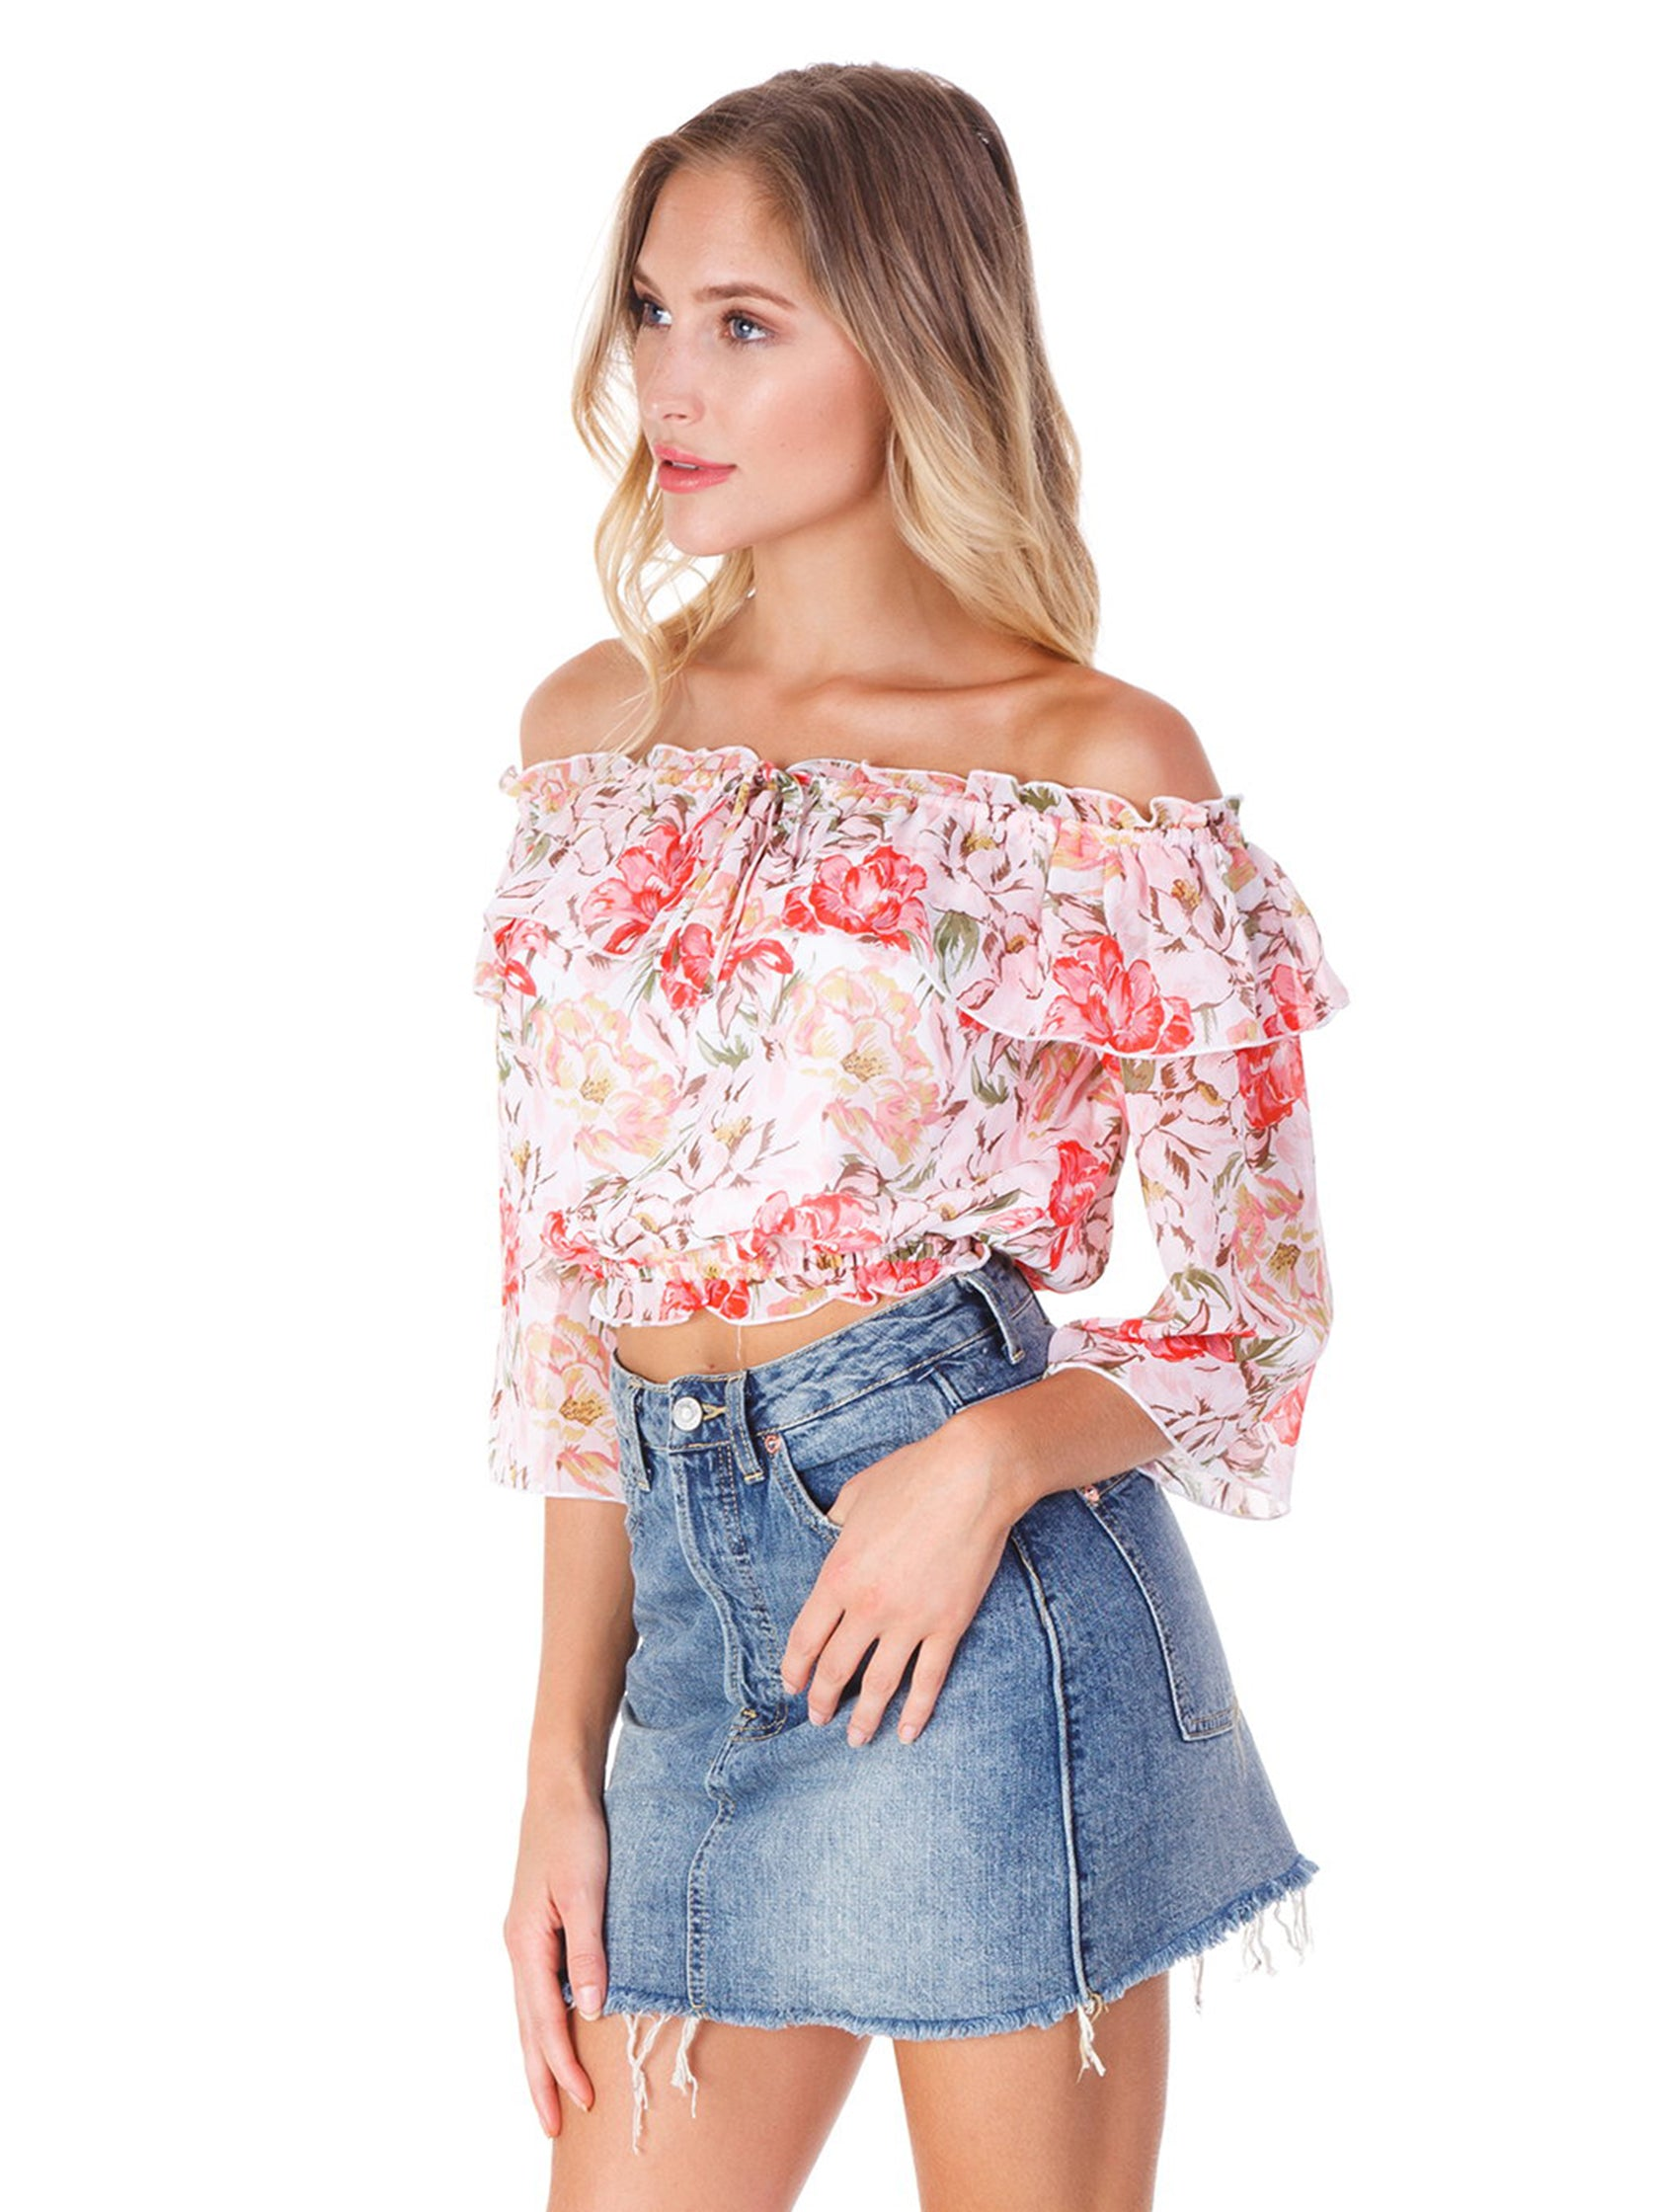 Women wearing a top rental from WAYF called Cosenza Off Shoulder Crop Top